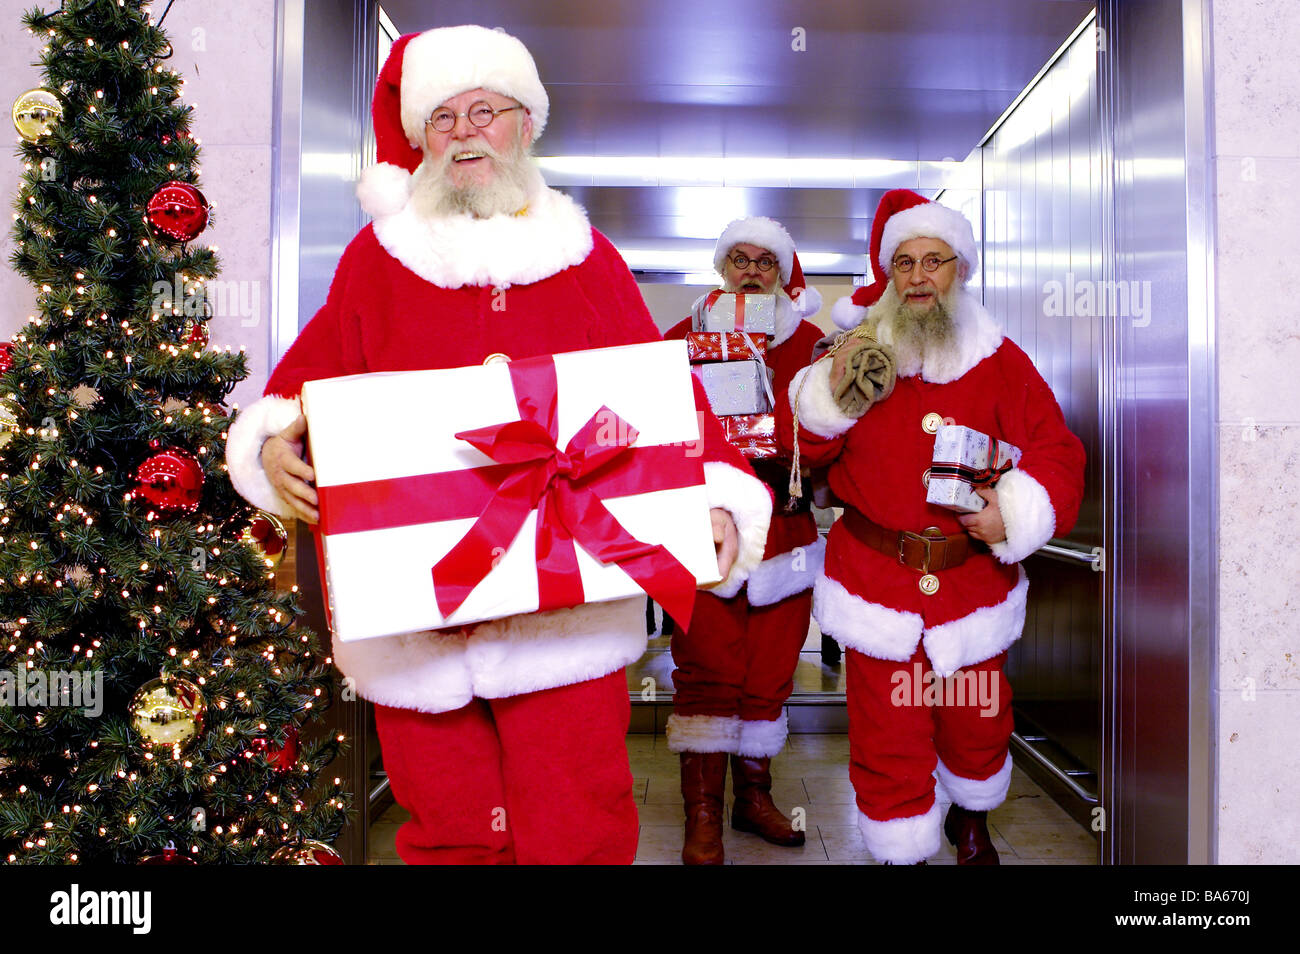 Elevator Santa Claus Cheerfully Gifts Carries Gets Out